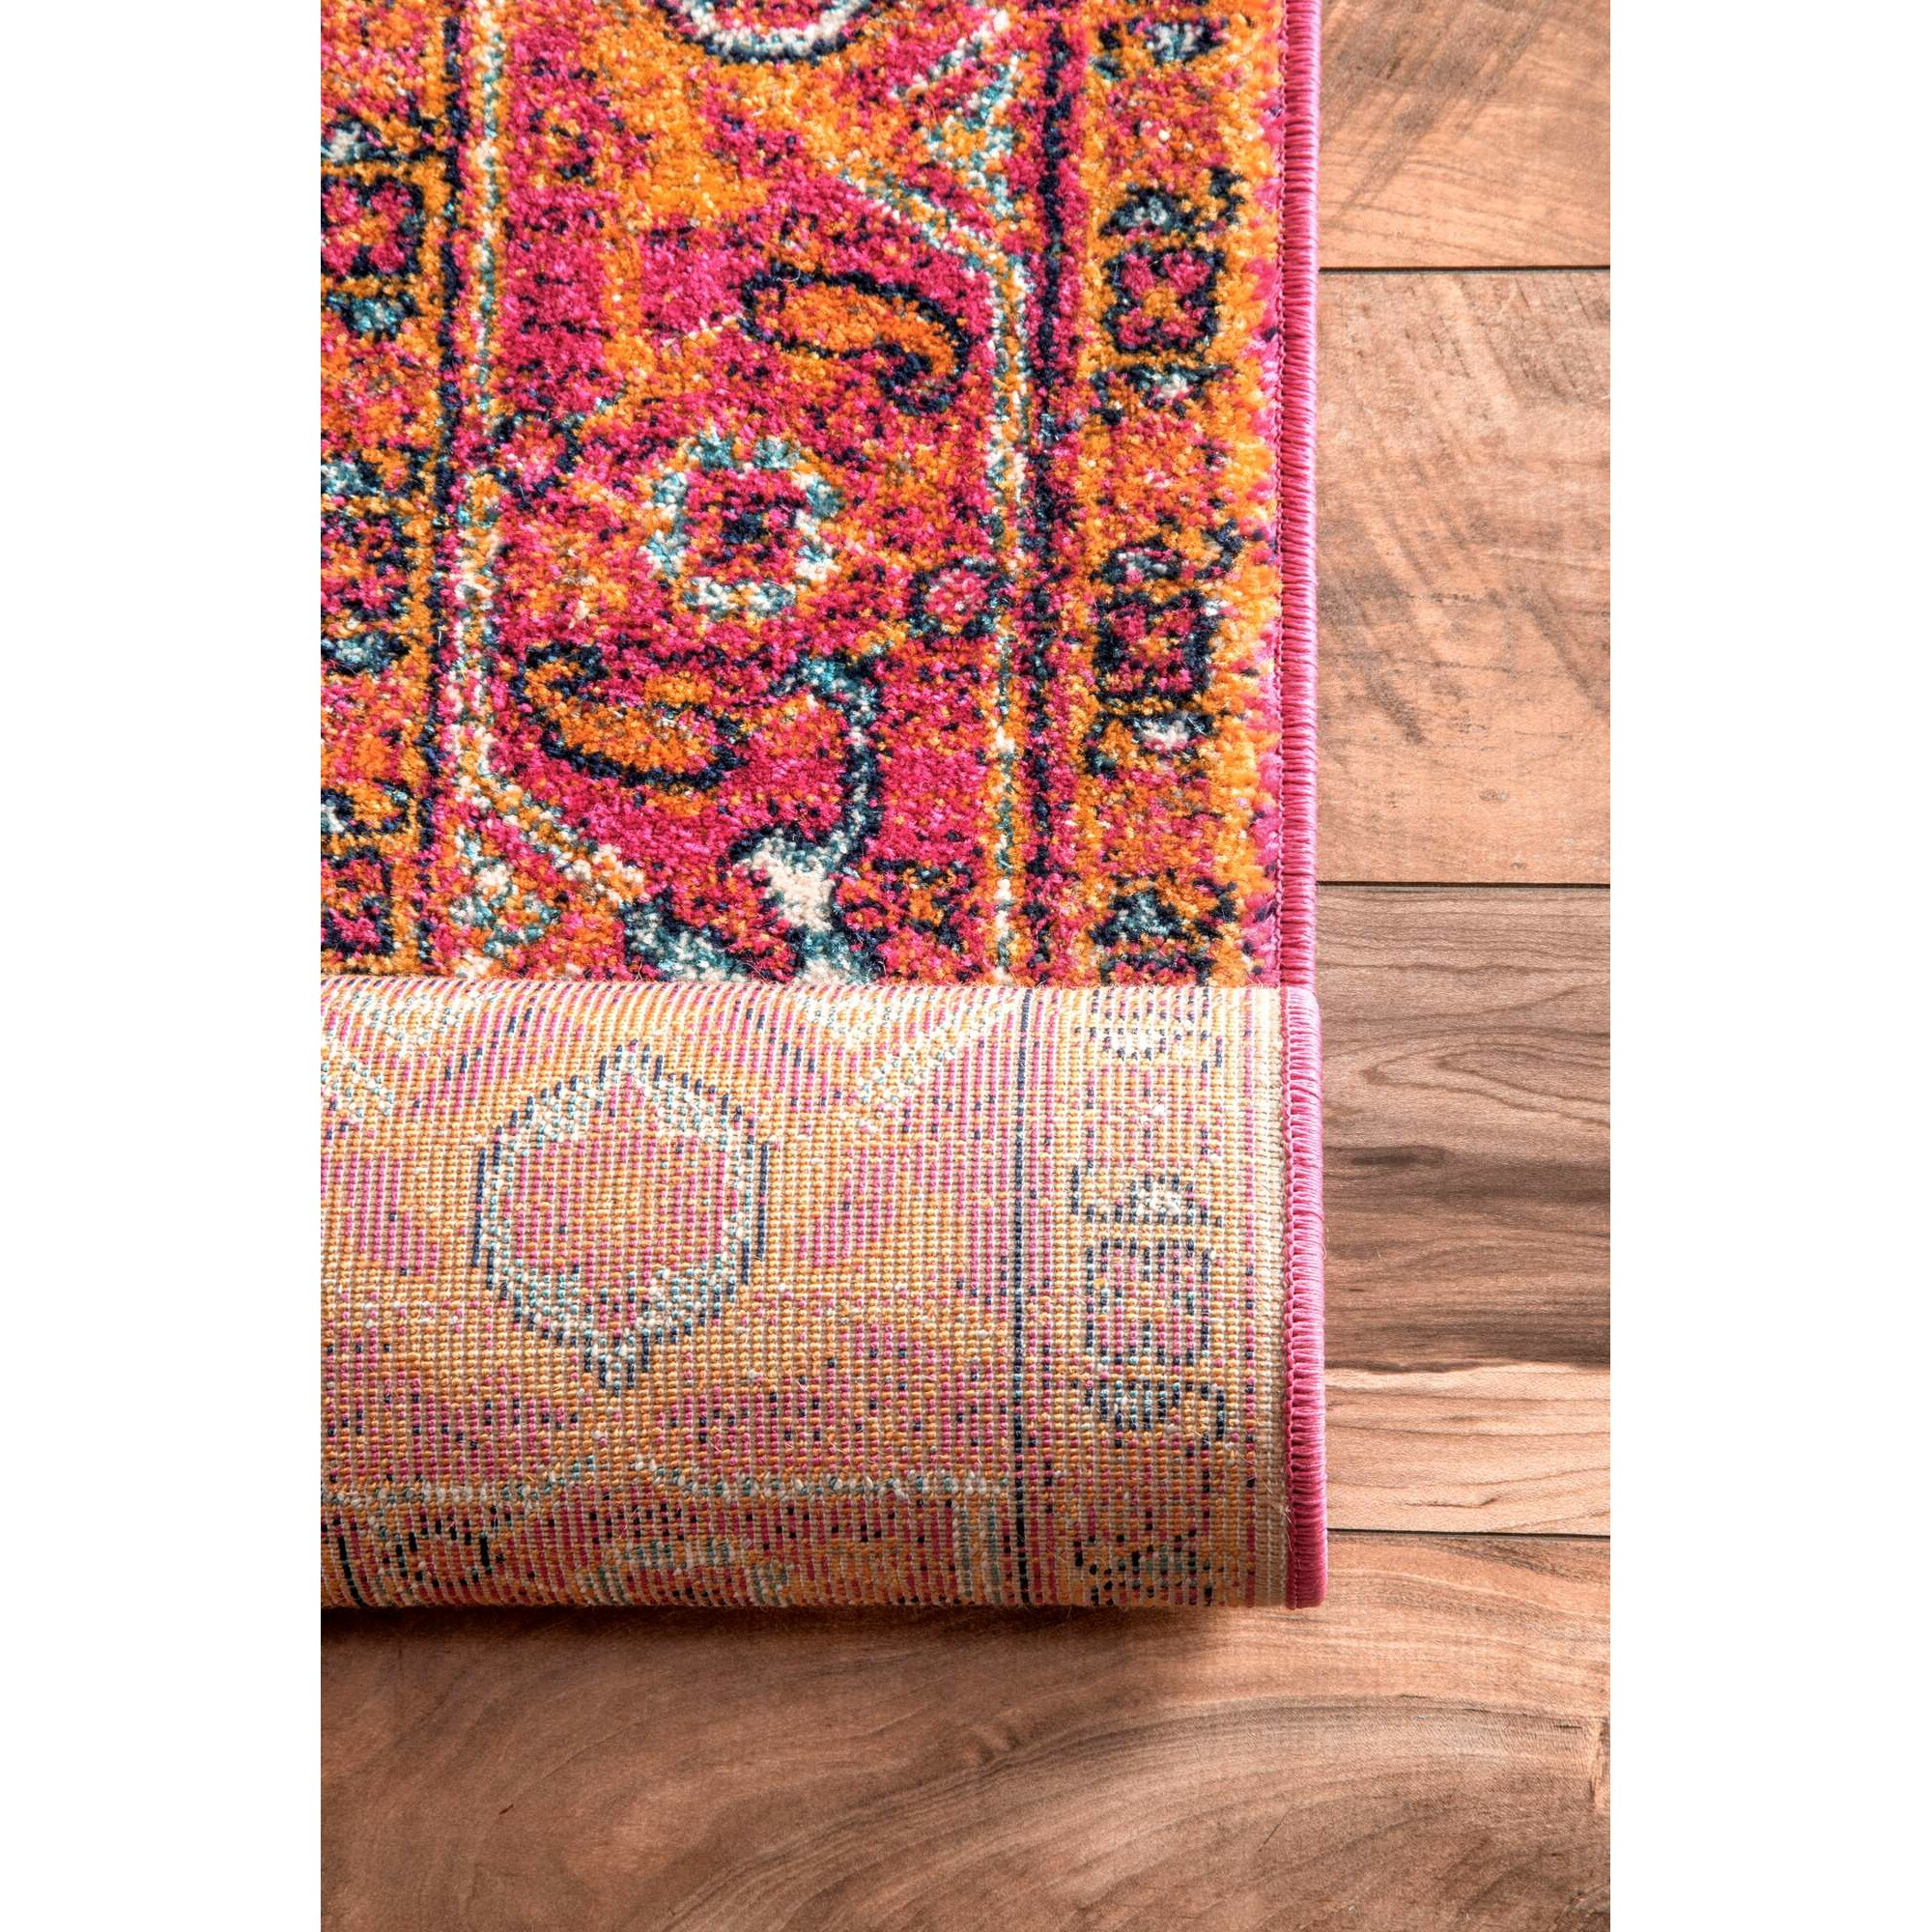 Bungalow Rose Barksdale Blooming Multi-Colored Area Rug